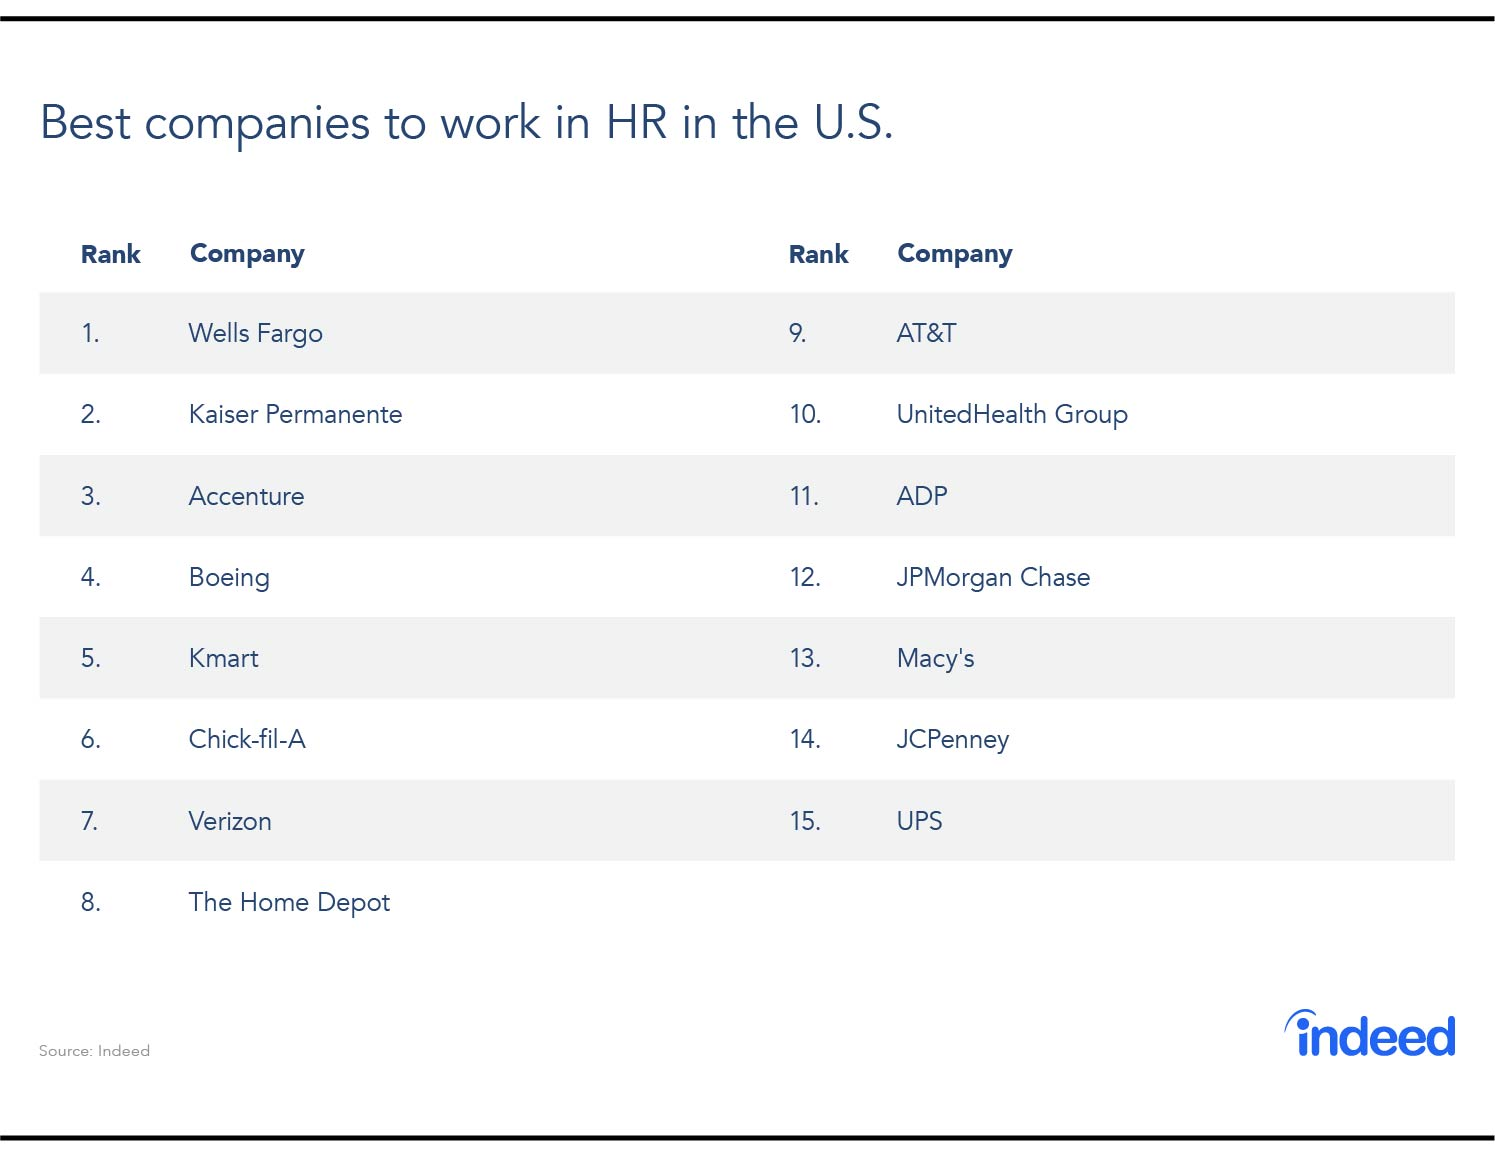 The best companies to work in HR